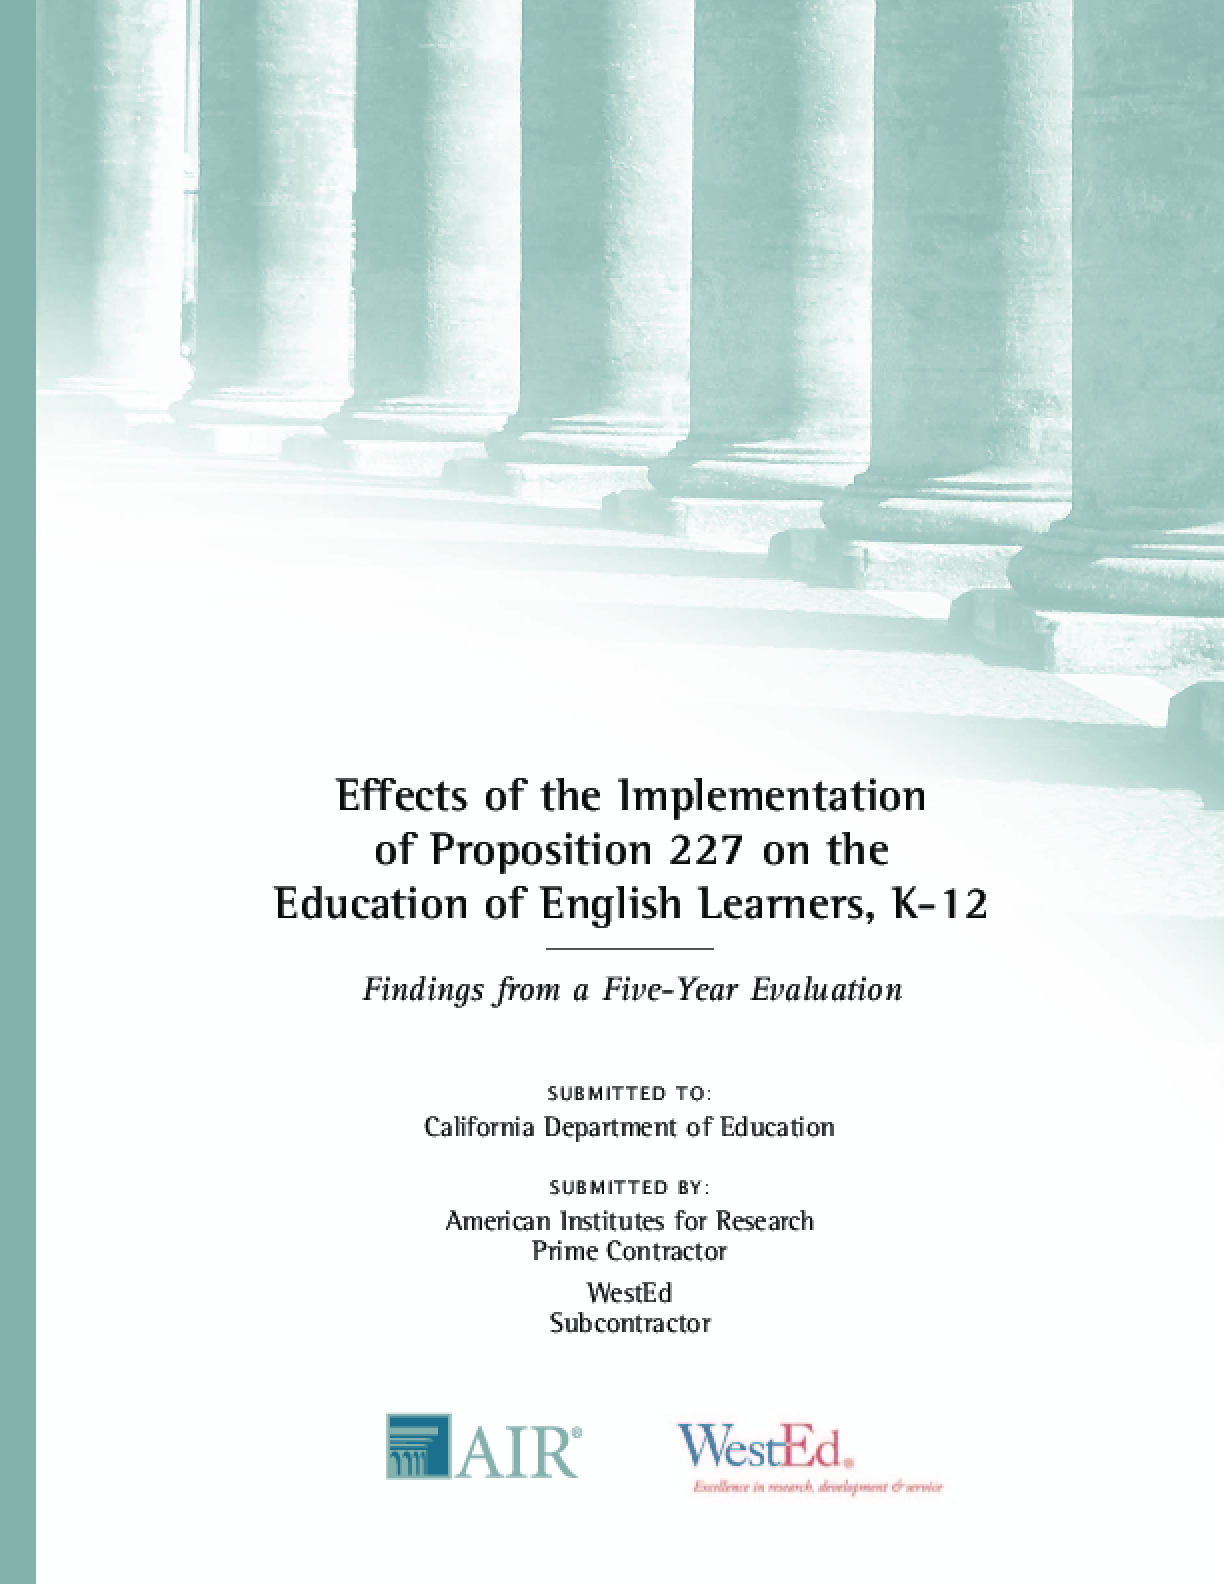 Effects of the Implementation of Proposition 227 on the Education of English Learners, K-12: Findings from a Five-Year Evaluation: Final Report